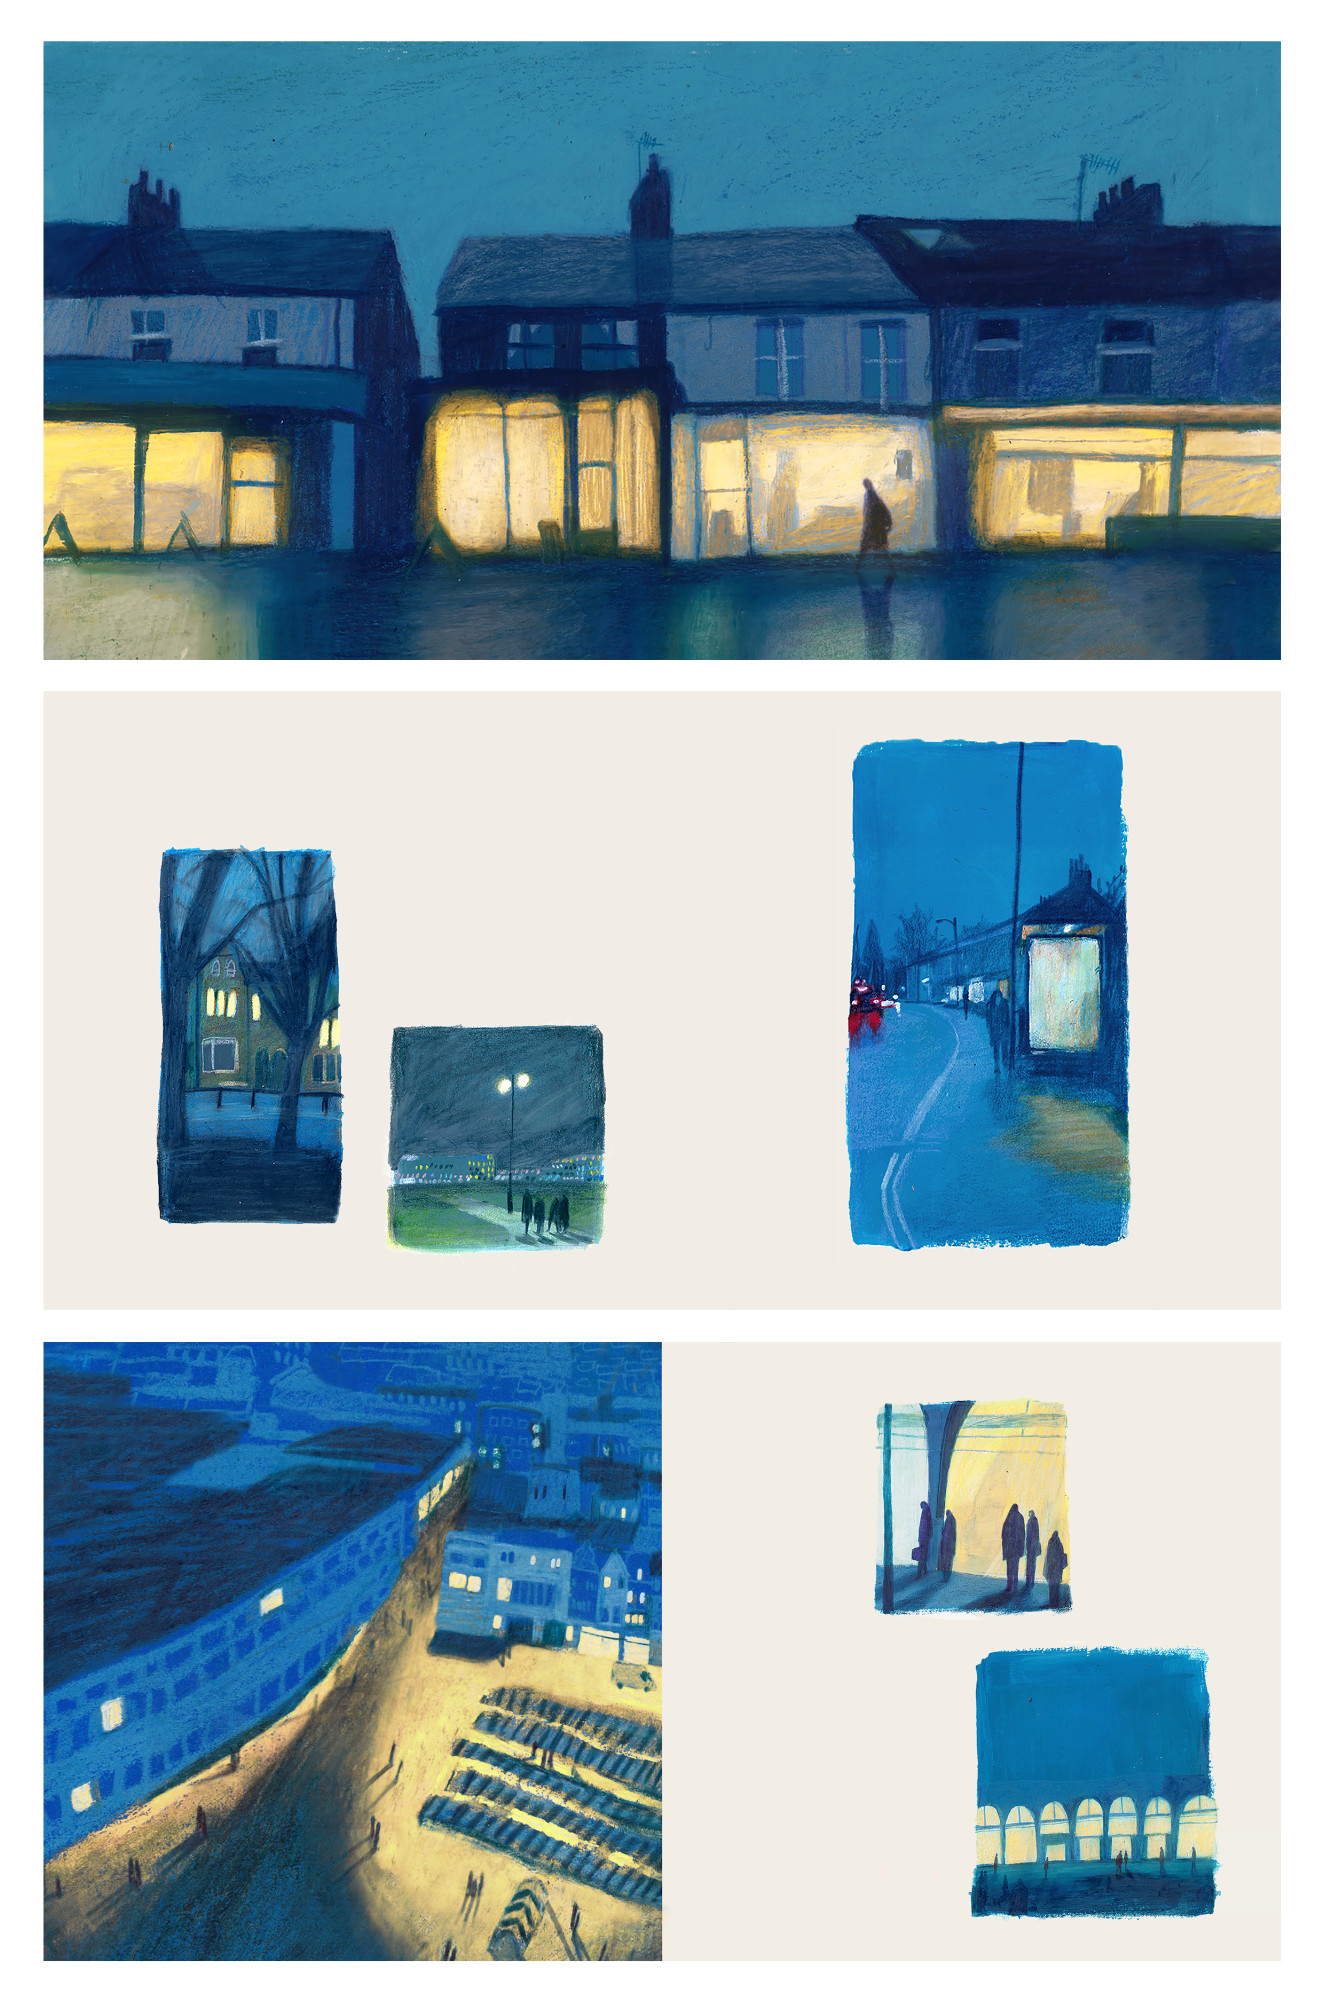 Three selected layouts from the book 'Habitats', which explores figures and light sources at night. This work was selected for the AOI World Illustration Awards long-list. The whole book can be found on Jodie's website. Jodie Howard.